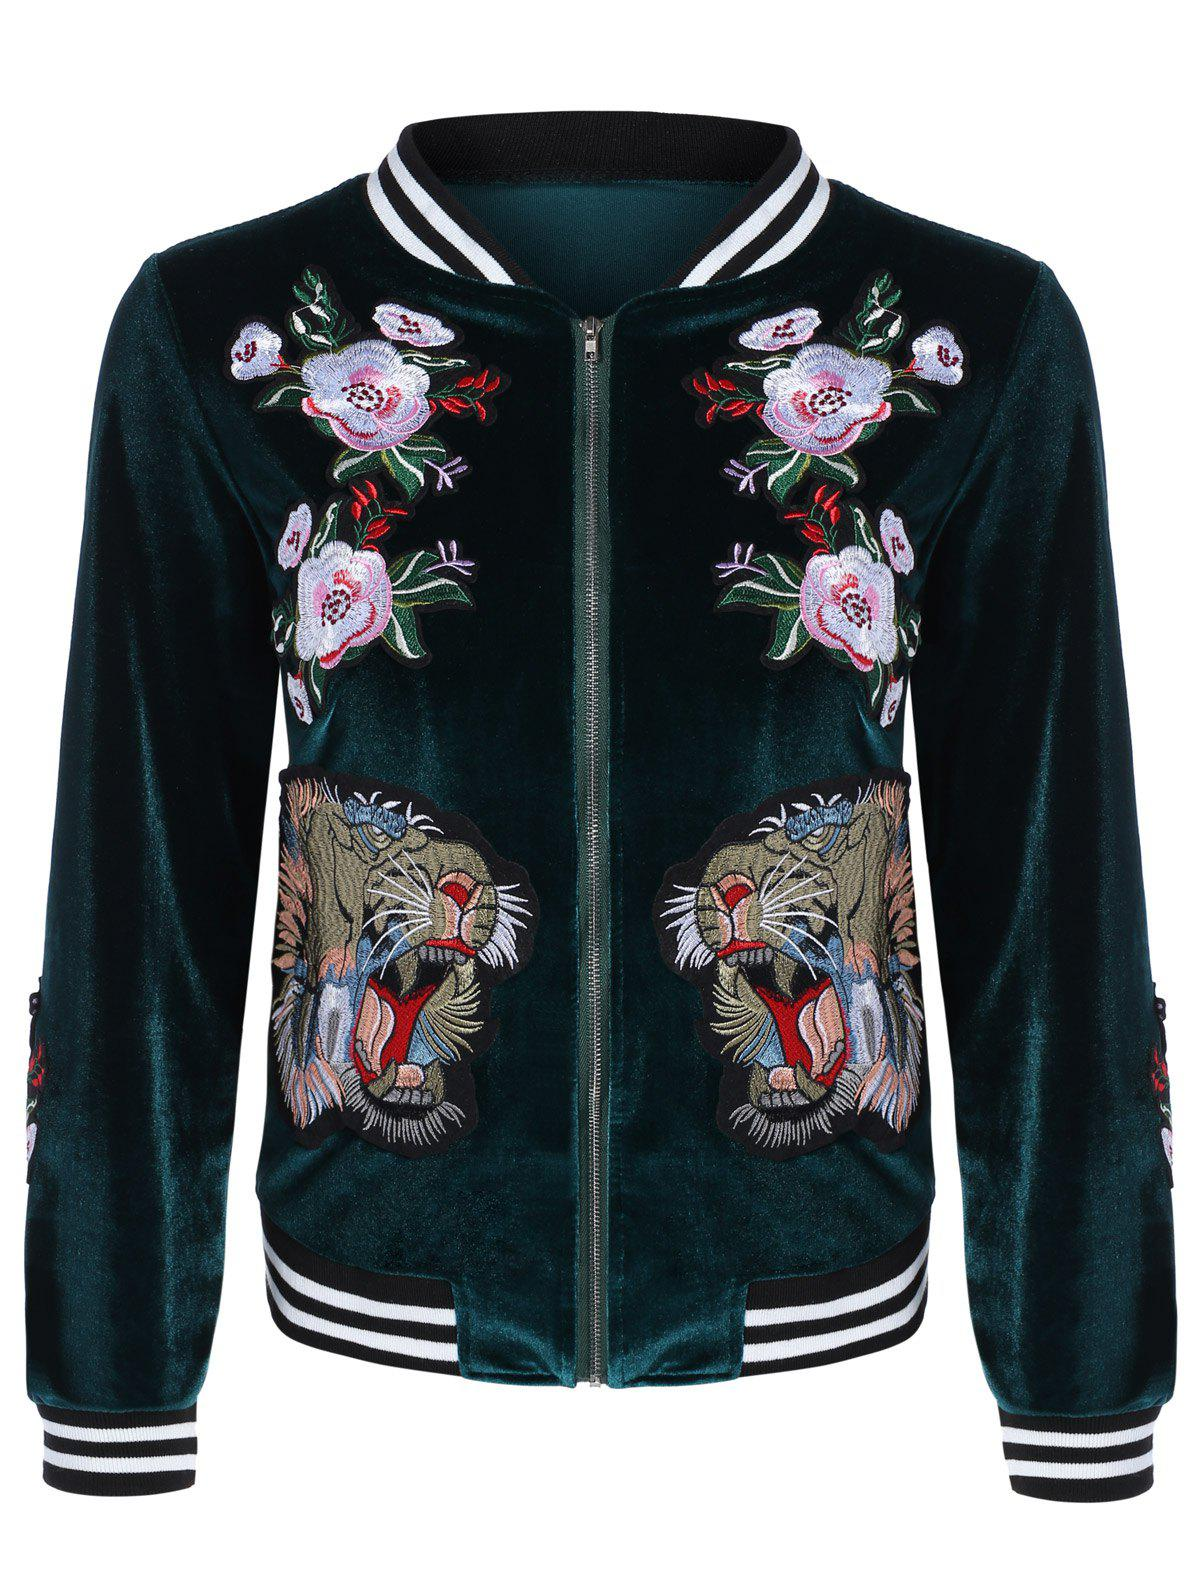 Velvet Rose Tiger Embroidery Bomber Jacket - BLACKISH GREEN XL